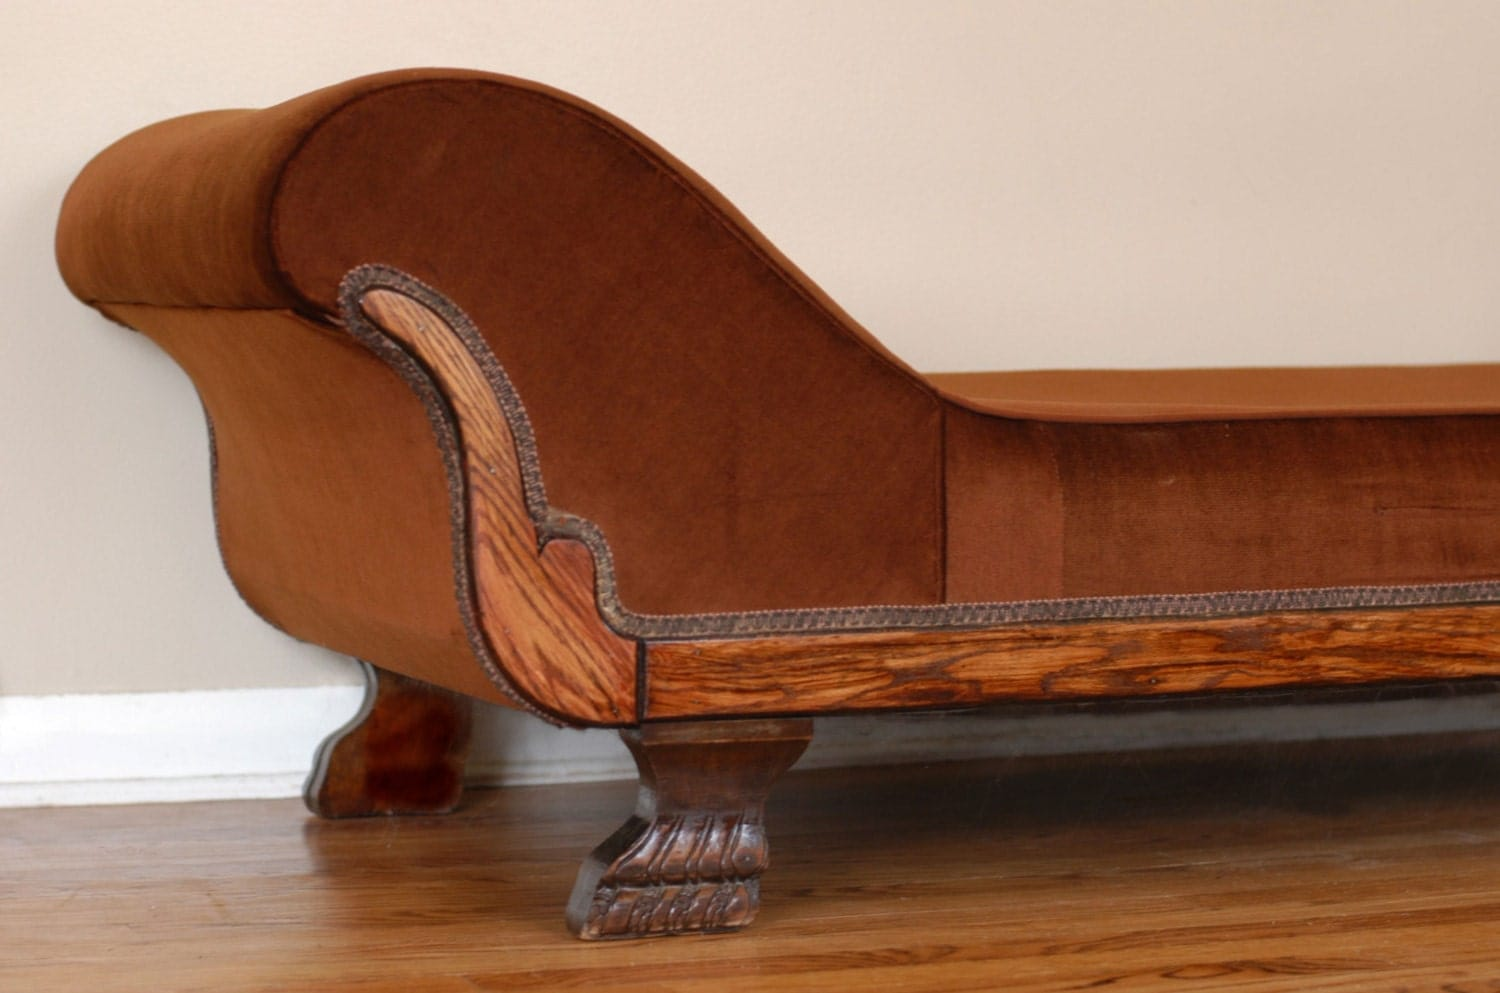 Antique oak fainting couch chaise lounge by bonnbonn on etsy for Antique chaise lounge